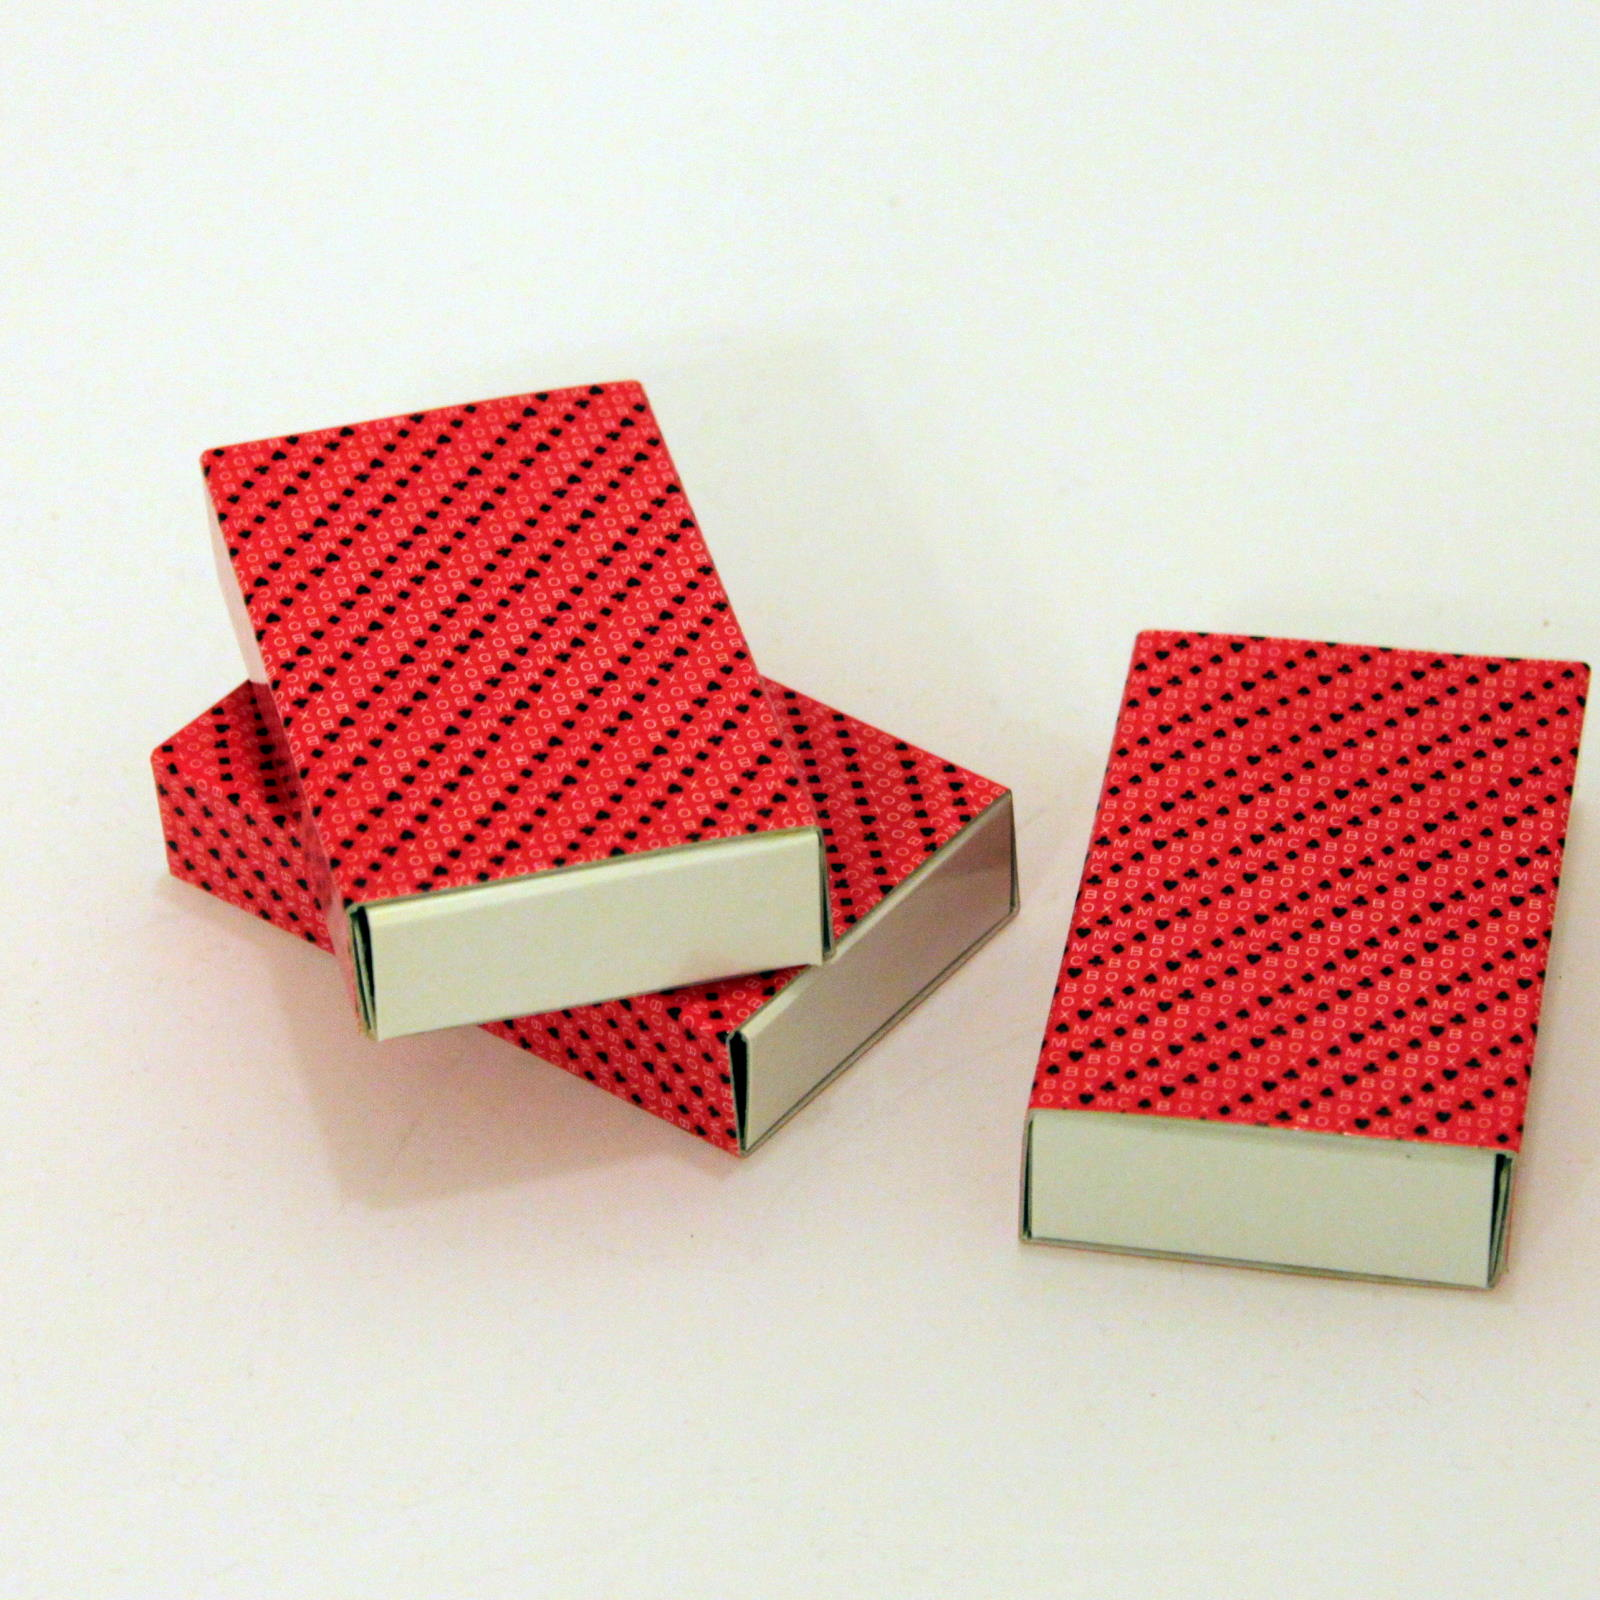 MC Box by Mikame Craft